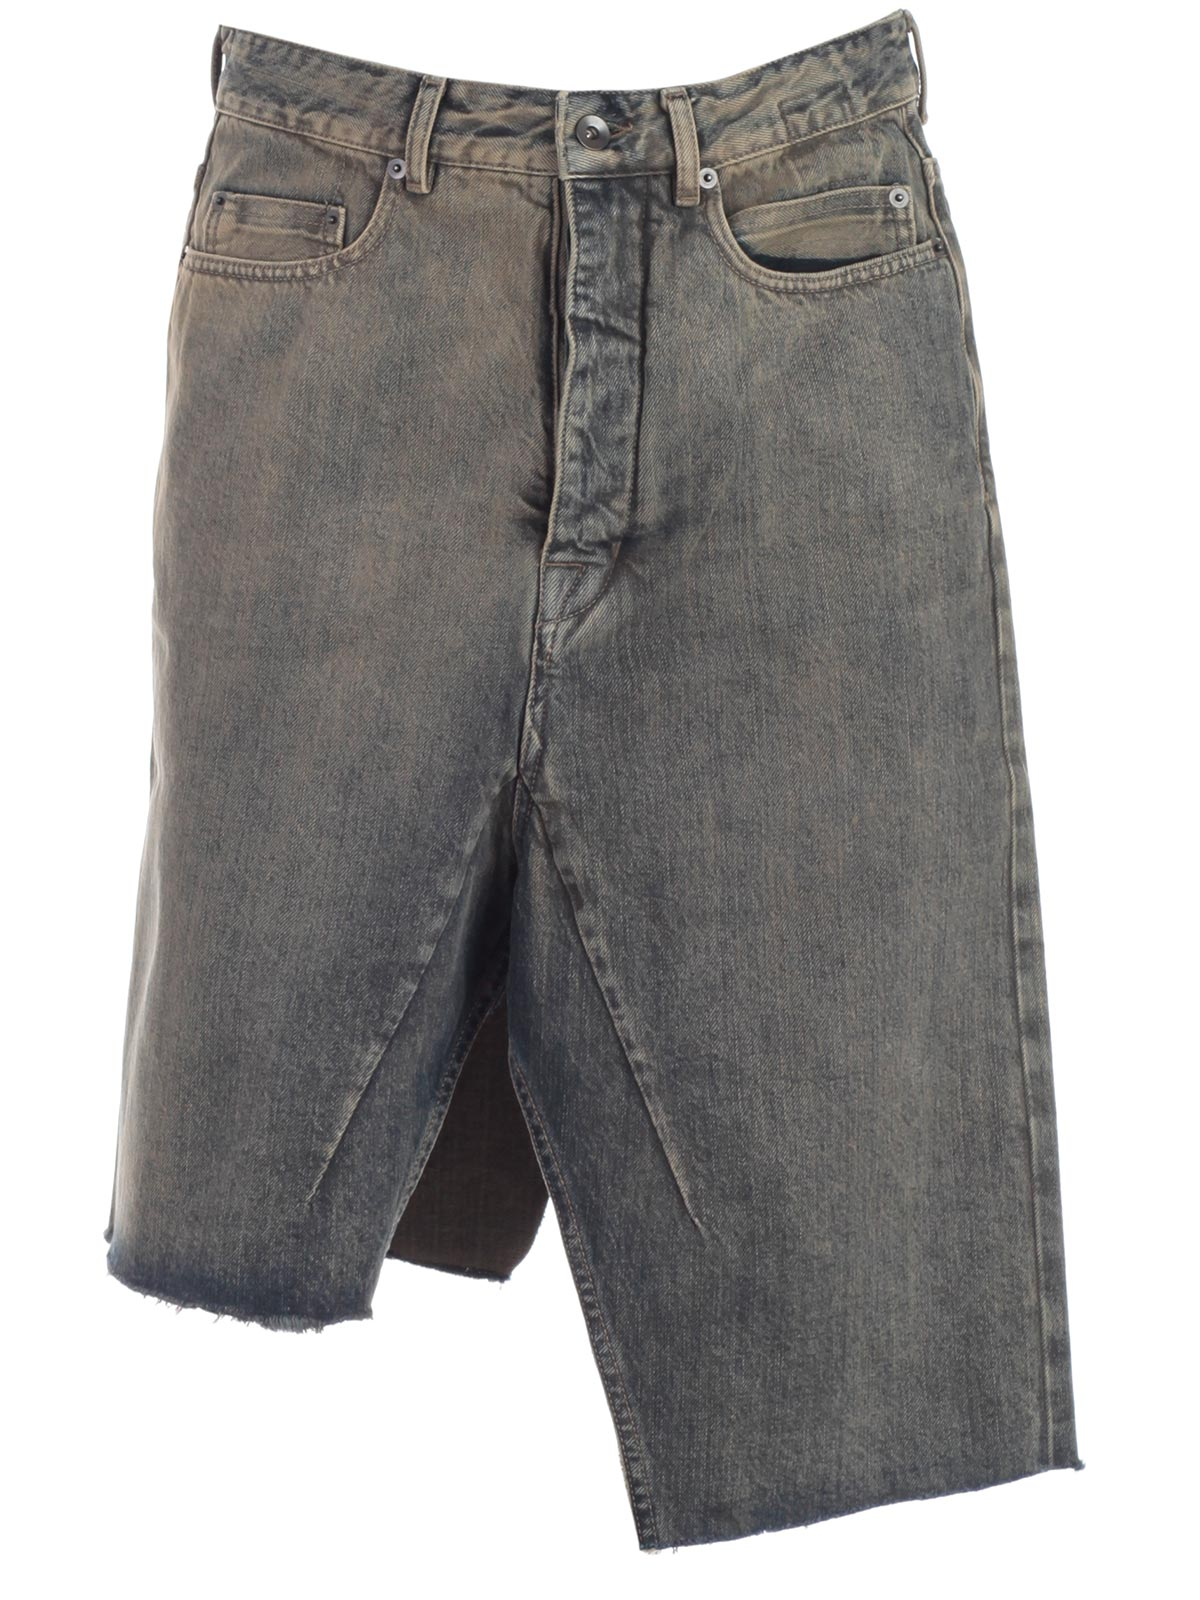 Picture of Rick Owens Drkshdw Shorts